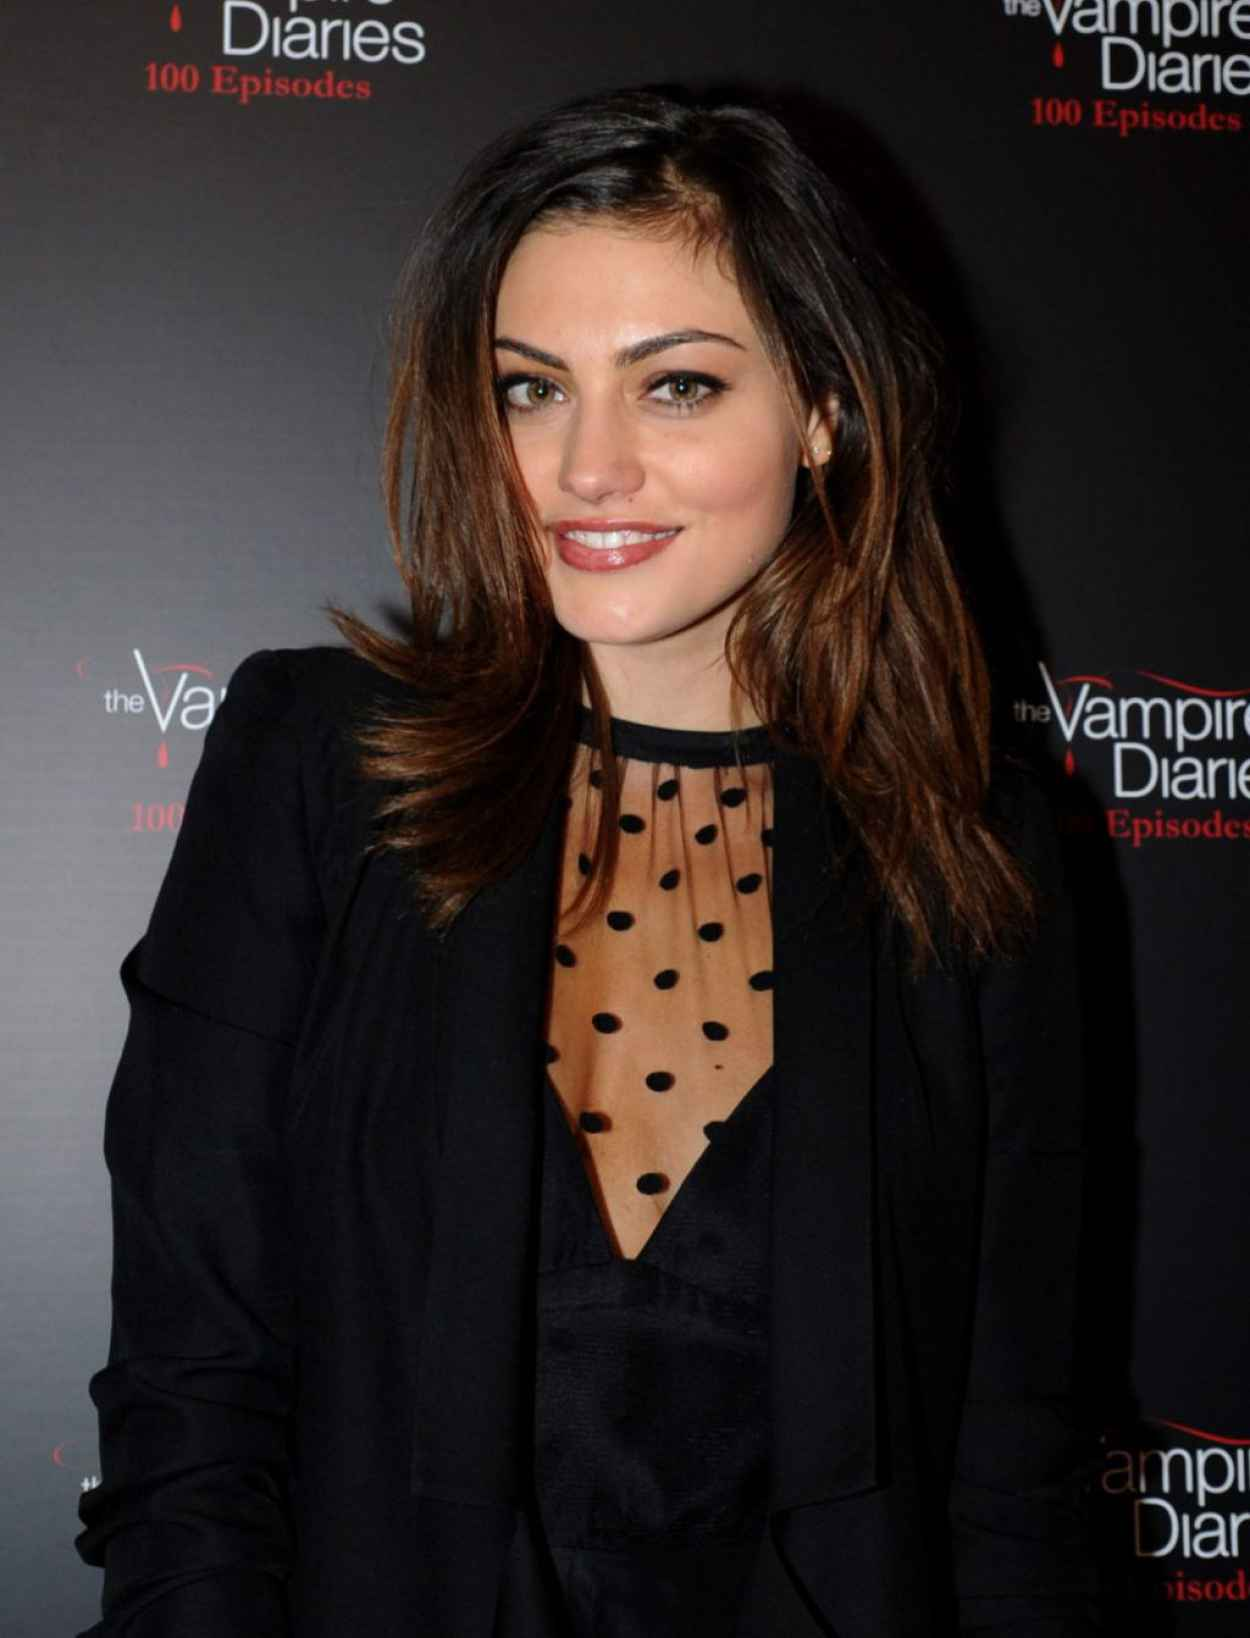 Phoebe Tonkin Attends The Vampire Diaries 100th Episode Celebration-1